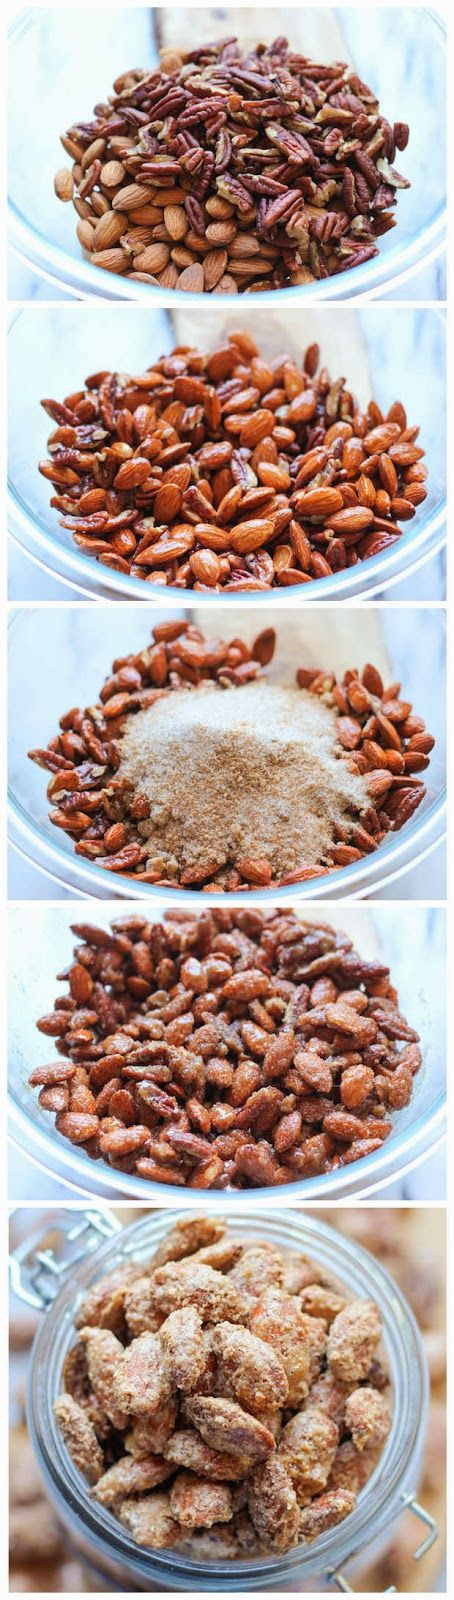 Cinnamon Sugar Candied Nuts | Dips and finger foods | Pinterest